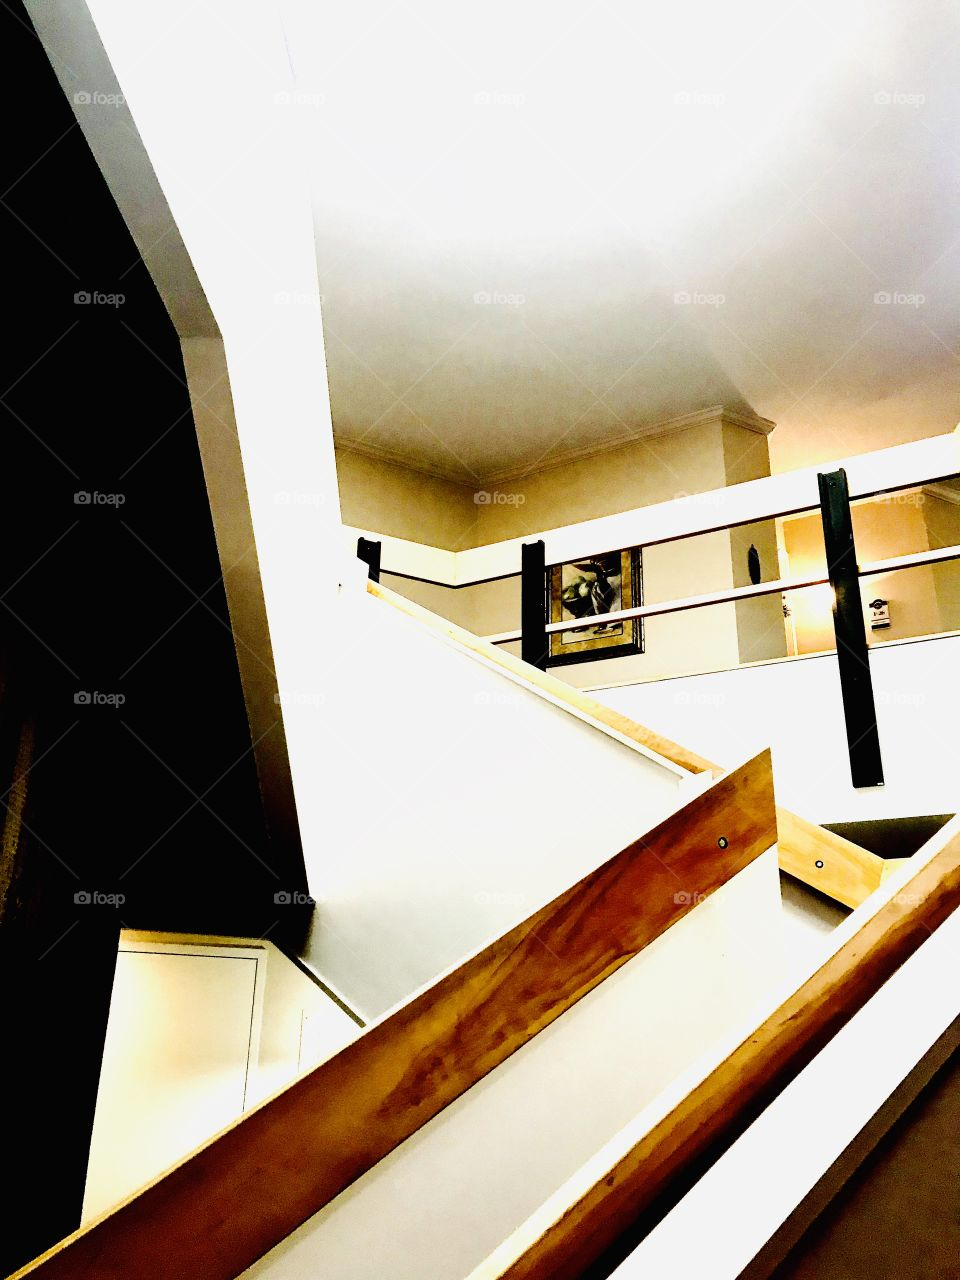 Architectural photo of a white and brown stairway with a turn in it makes for a fun photo!